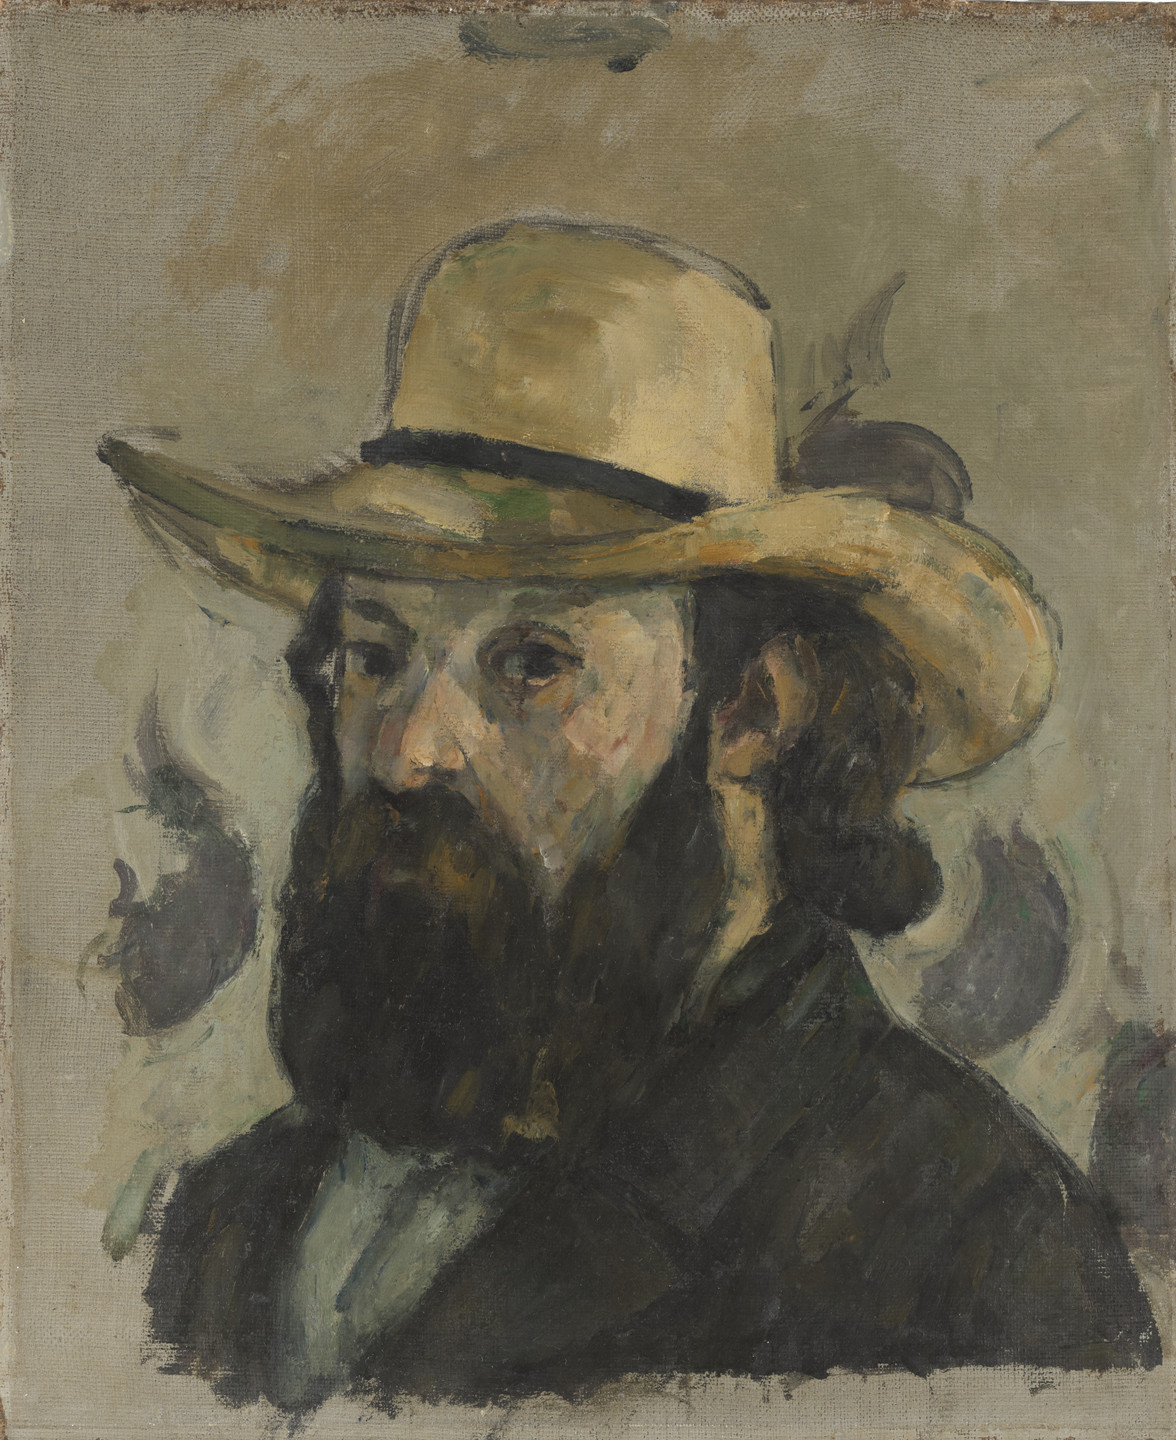 Paul Cézanne. Self-Portrait in a Straw Hat. 1875-76